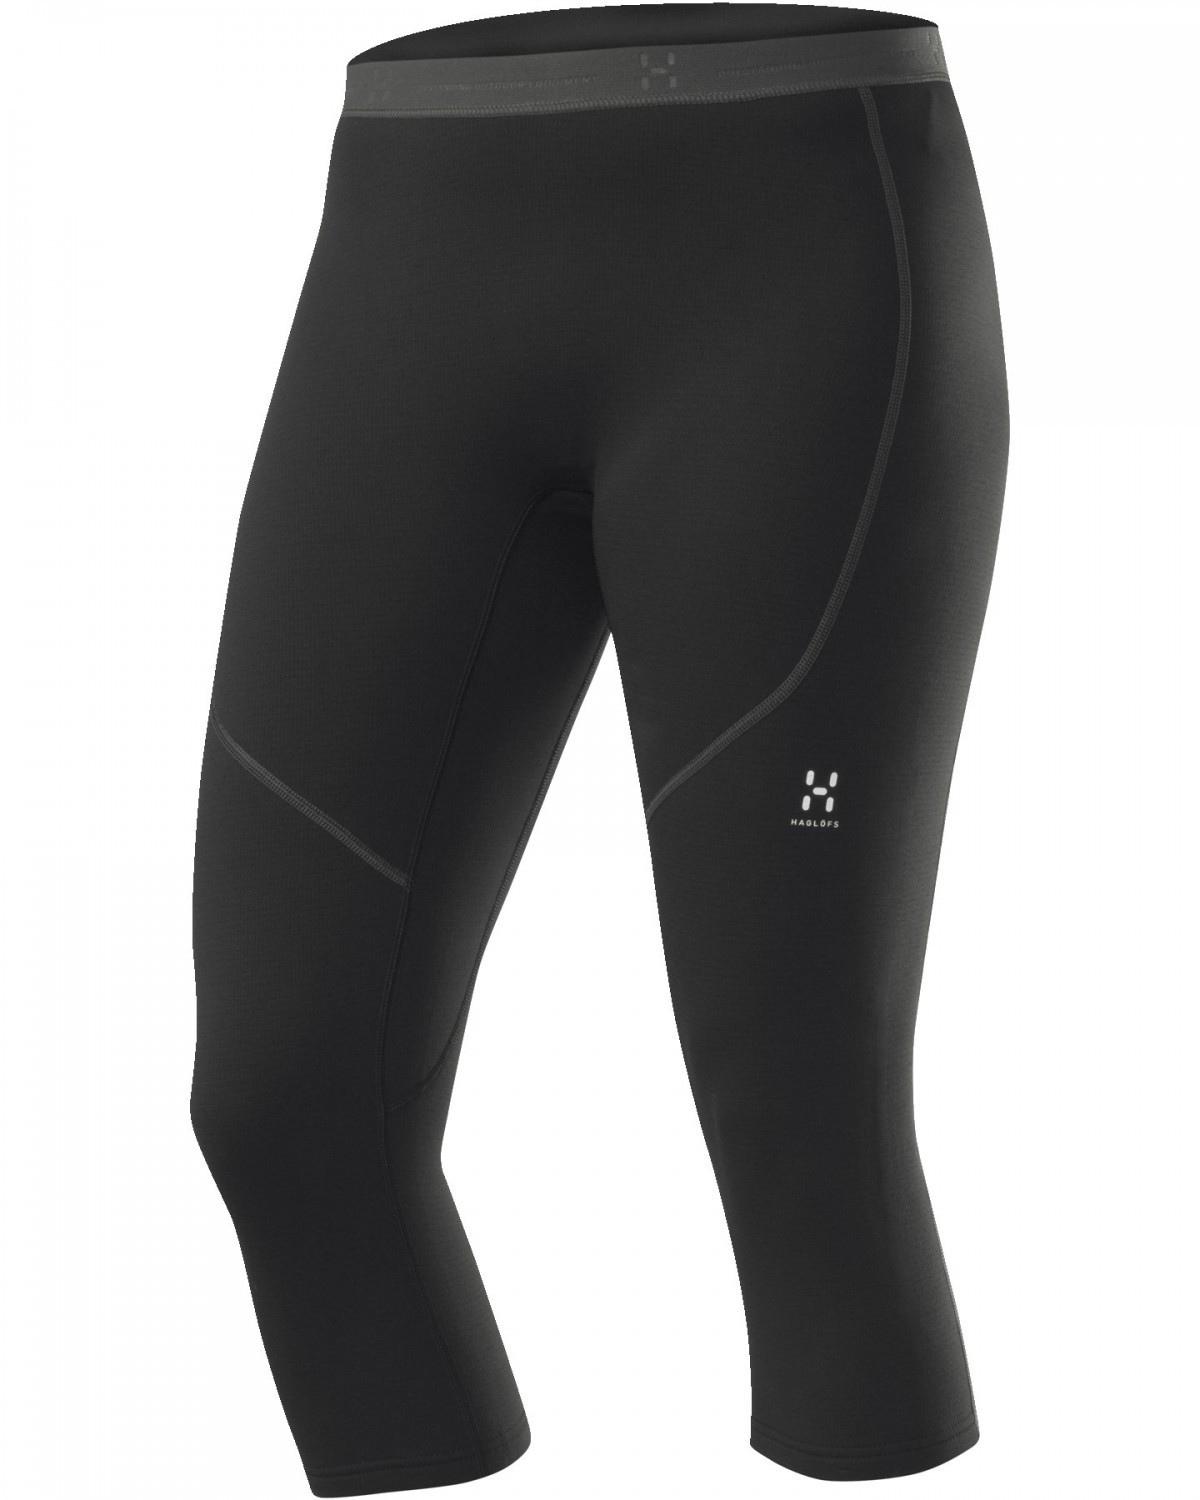 Haglofs Actives Warm II Q Short John True Black-30